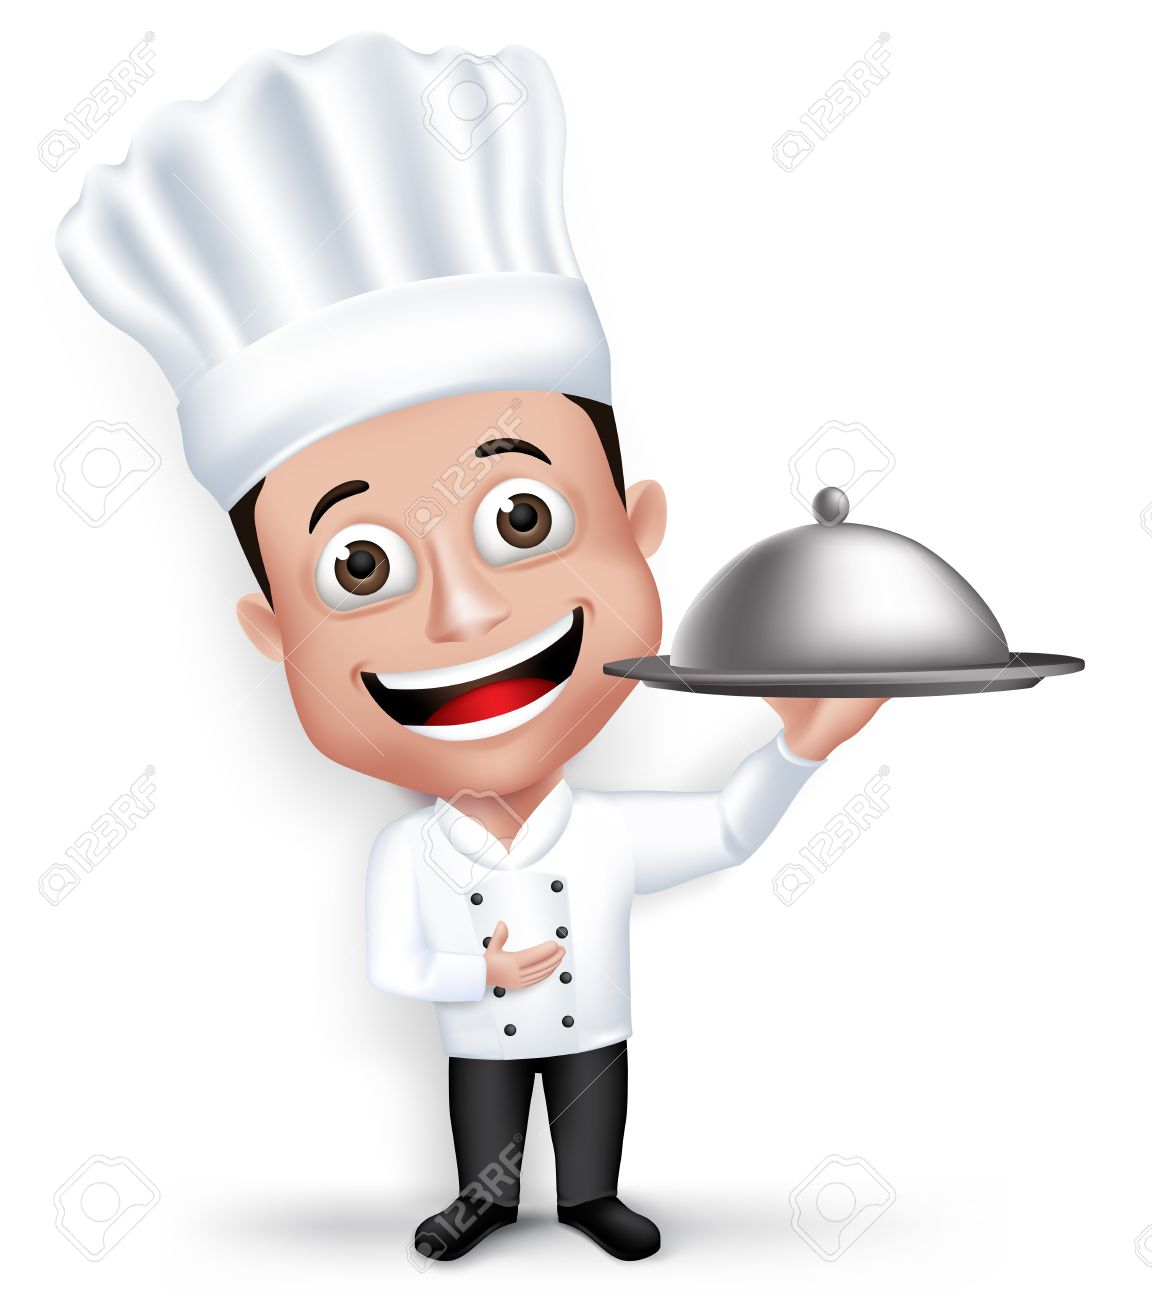 Realistic 3D Young Friendly Professional Chef Cook Character in Restaurant Uniform Happy Serving Food Menu Isolated in White Background. - 43293697